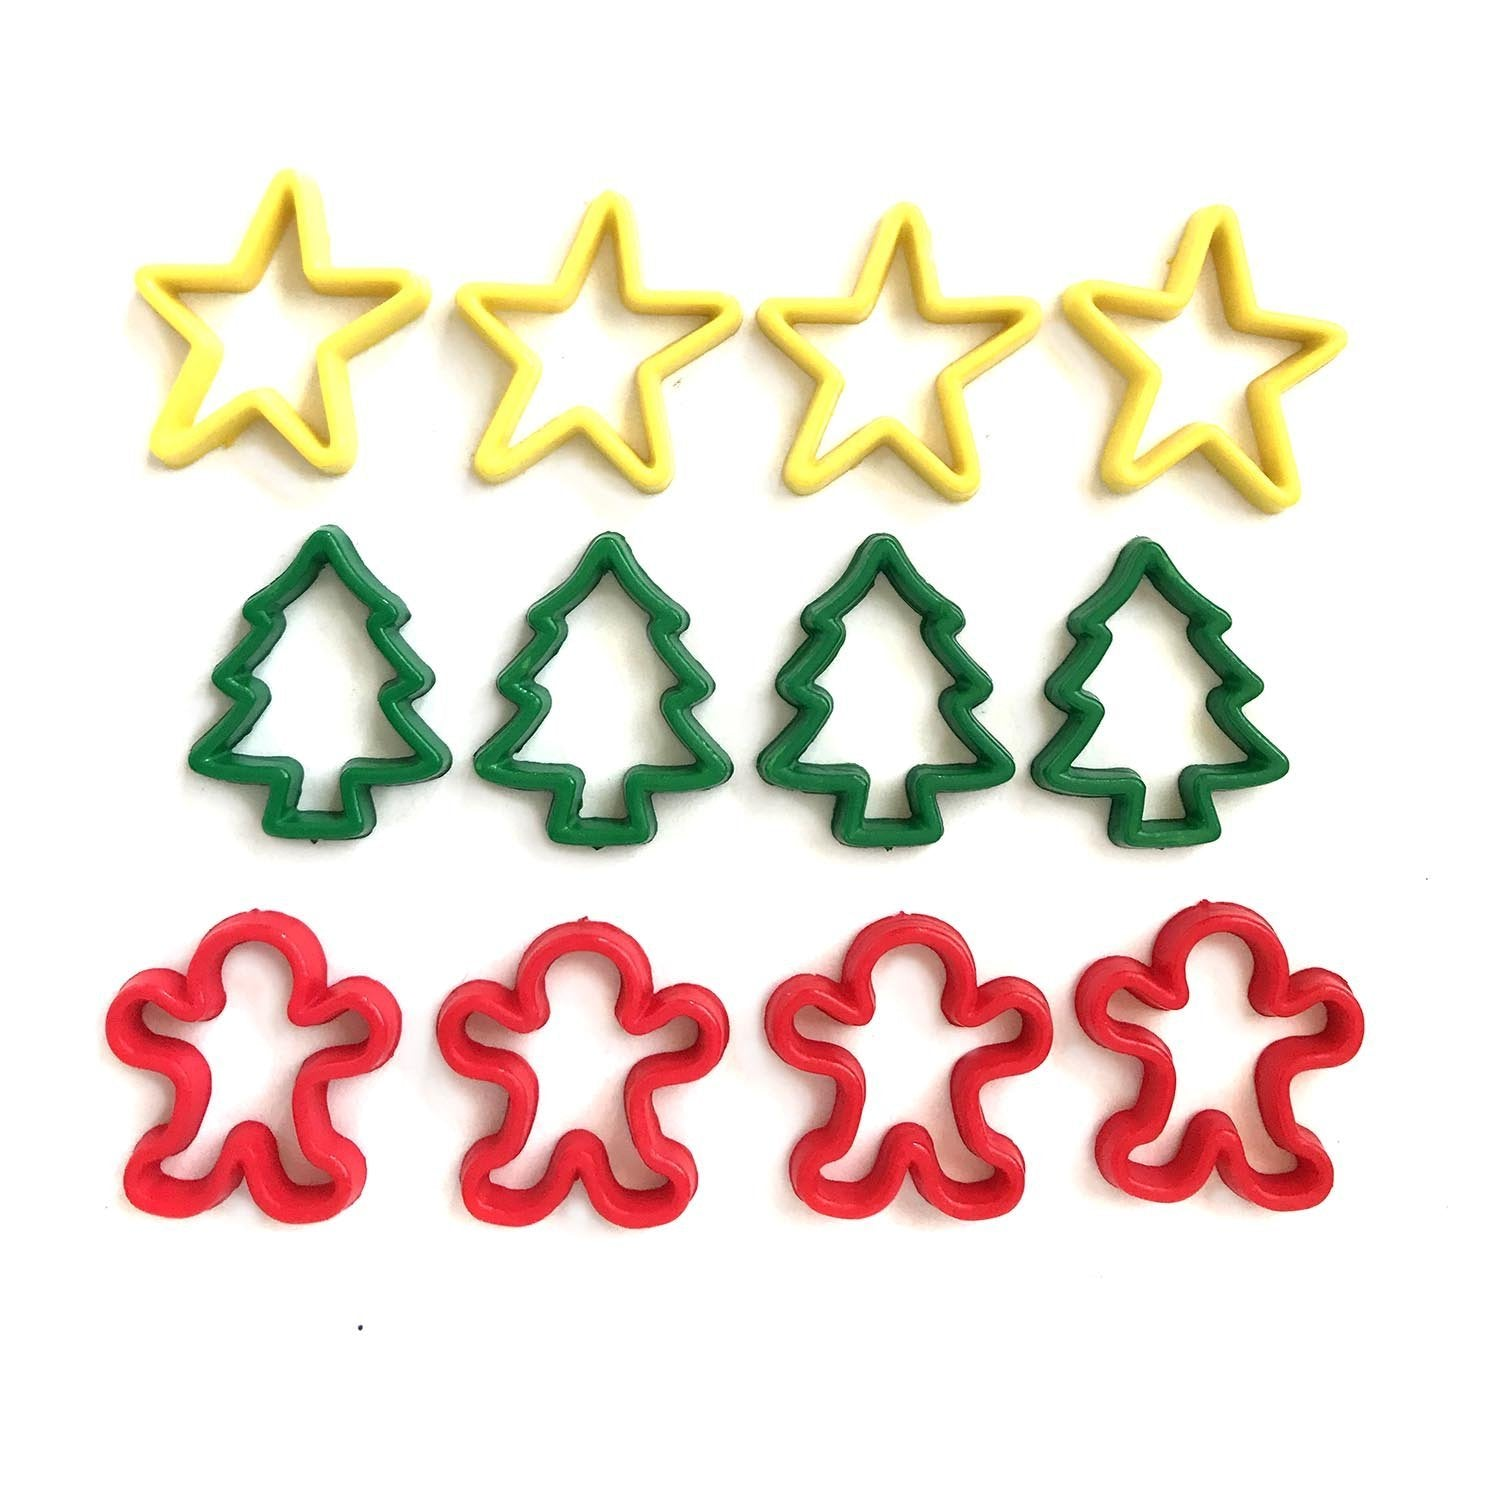 Colorful Cut Outs - 4832